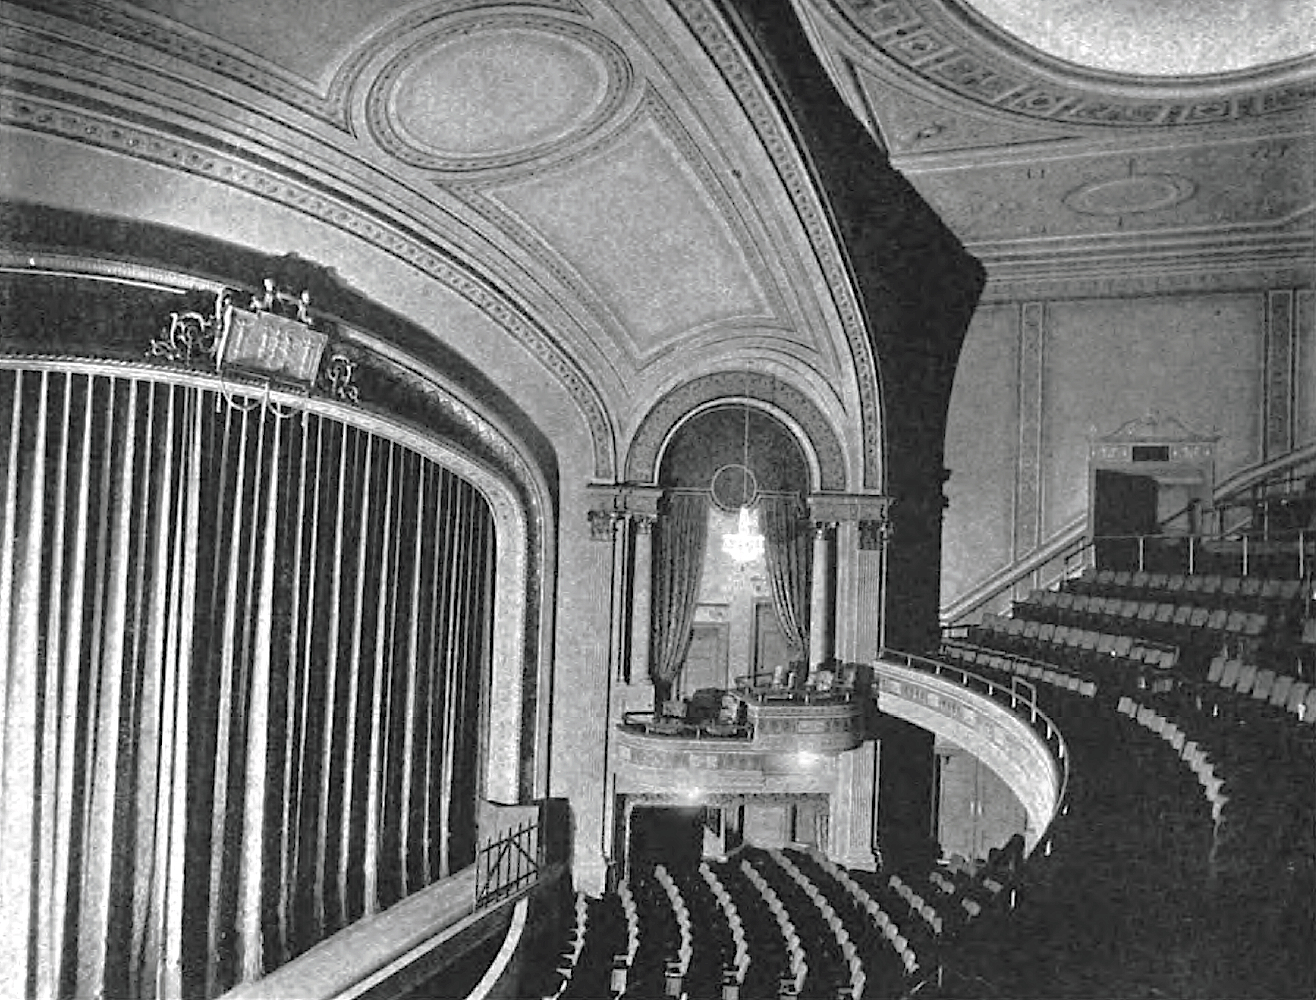 "<p><a href=""https://commons.wikimedia.org/wiki/File:Apollo_Theatre,_side_view_of_interior.jpg""></a></p><p>The inside of the Apol­lo The­atre on West <span class=""numbers"">42</span><sup class=""ordinal"">nd</sup> Street in New York City where the <a href=""https://maps.google.com/?q=1923+Broadway&amp;entry=gmail&amp;source=g""><span class=""numbers"">1923</span> Broad­way</a> stag­ing of <i>God of Vengeance </i>was shut down due to obscen­i­ty charges. Pho­to: from Eugene de Rosa's <i>Archi­tec­ture and Build­ing</i> via <a href=""https://commons.wikimedia.org/wiki/File:Apollo_Theatre,_side_view_of_interior.jpg"" target=""_blank"" data-saferedirecturl=""https://www.google.com/url?hl=en&amp;q=https://commons.wikimedia.org/wiki/File:Apollo_Theatre,_side_view_of_interior.jpg&amp;source=gmail&amp;ust=1512399453501000&amp;usg=AFQjCNHvHGit1heHeiq2E9vAkIA8C410EQ"">Wiki­me­dia Com­mons</a>.</p>"